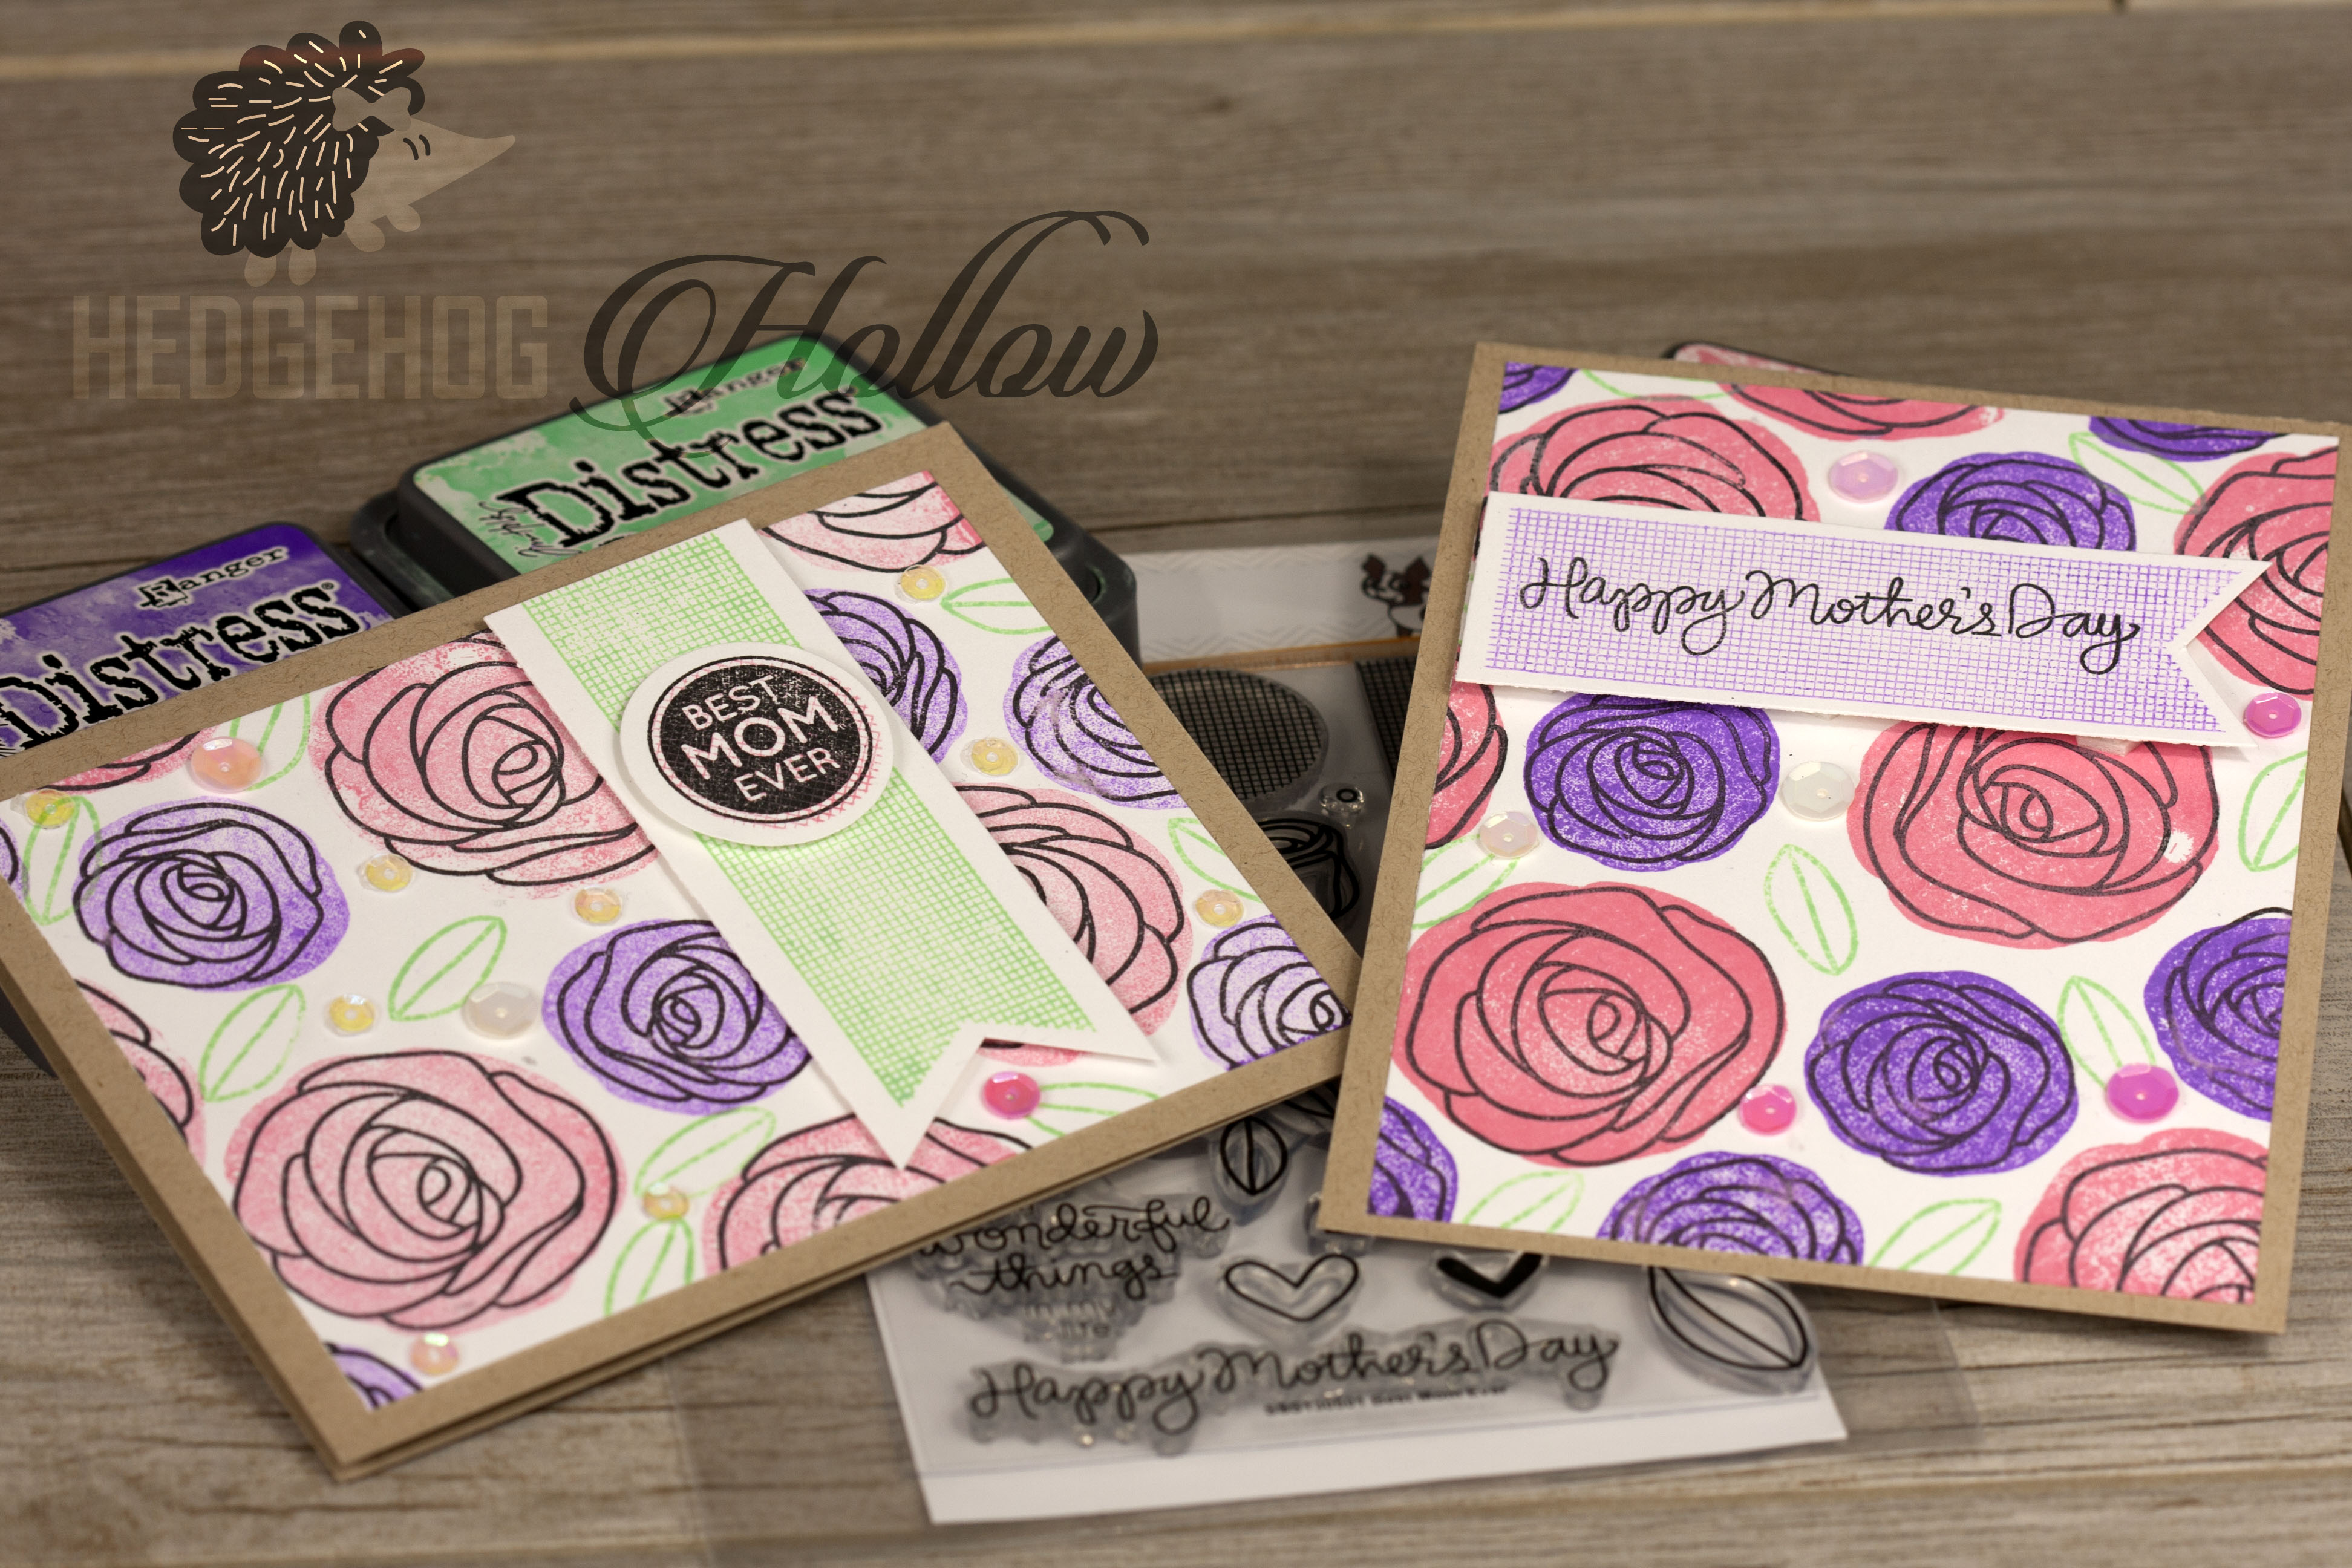 Simon Says Stamp April release and a Reverse Stamping Tutorial